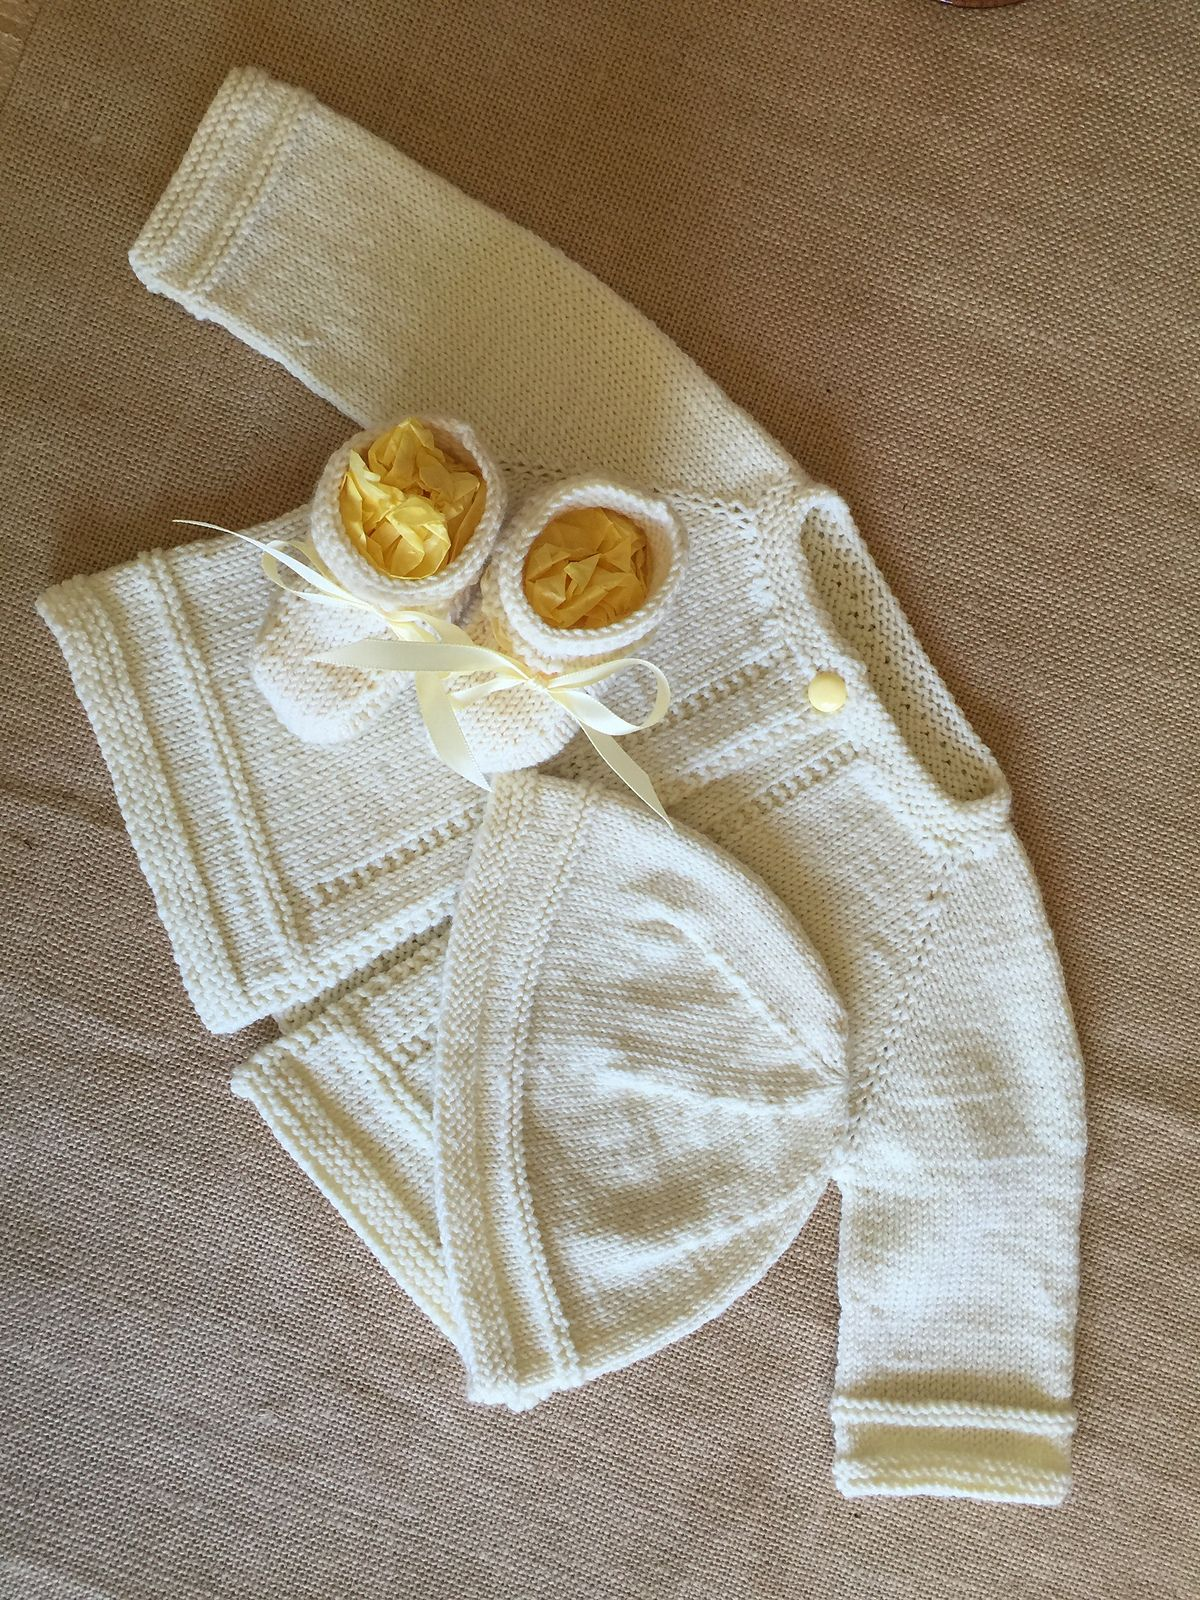 Ravelry: MarianneJudith\'s Liz\'s Baby Sweater Set | Knitting patterns ...